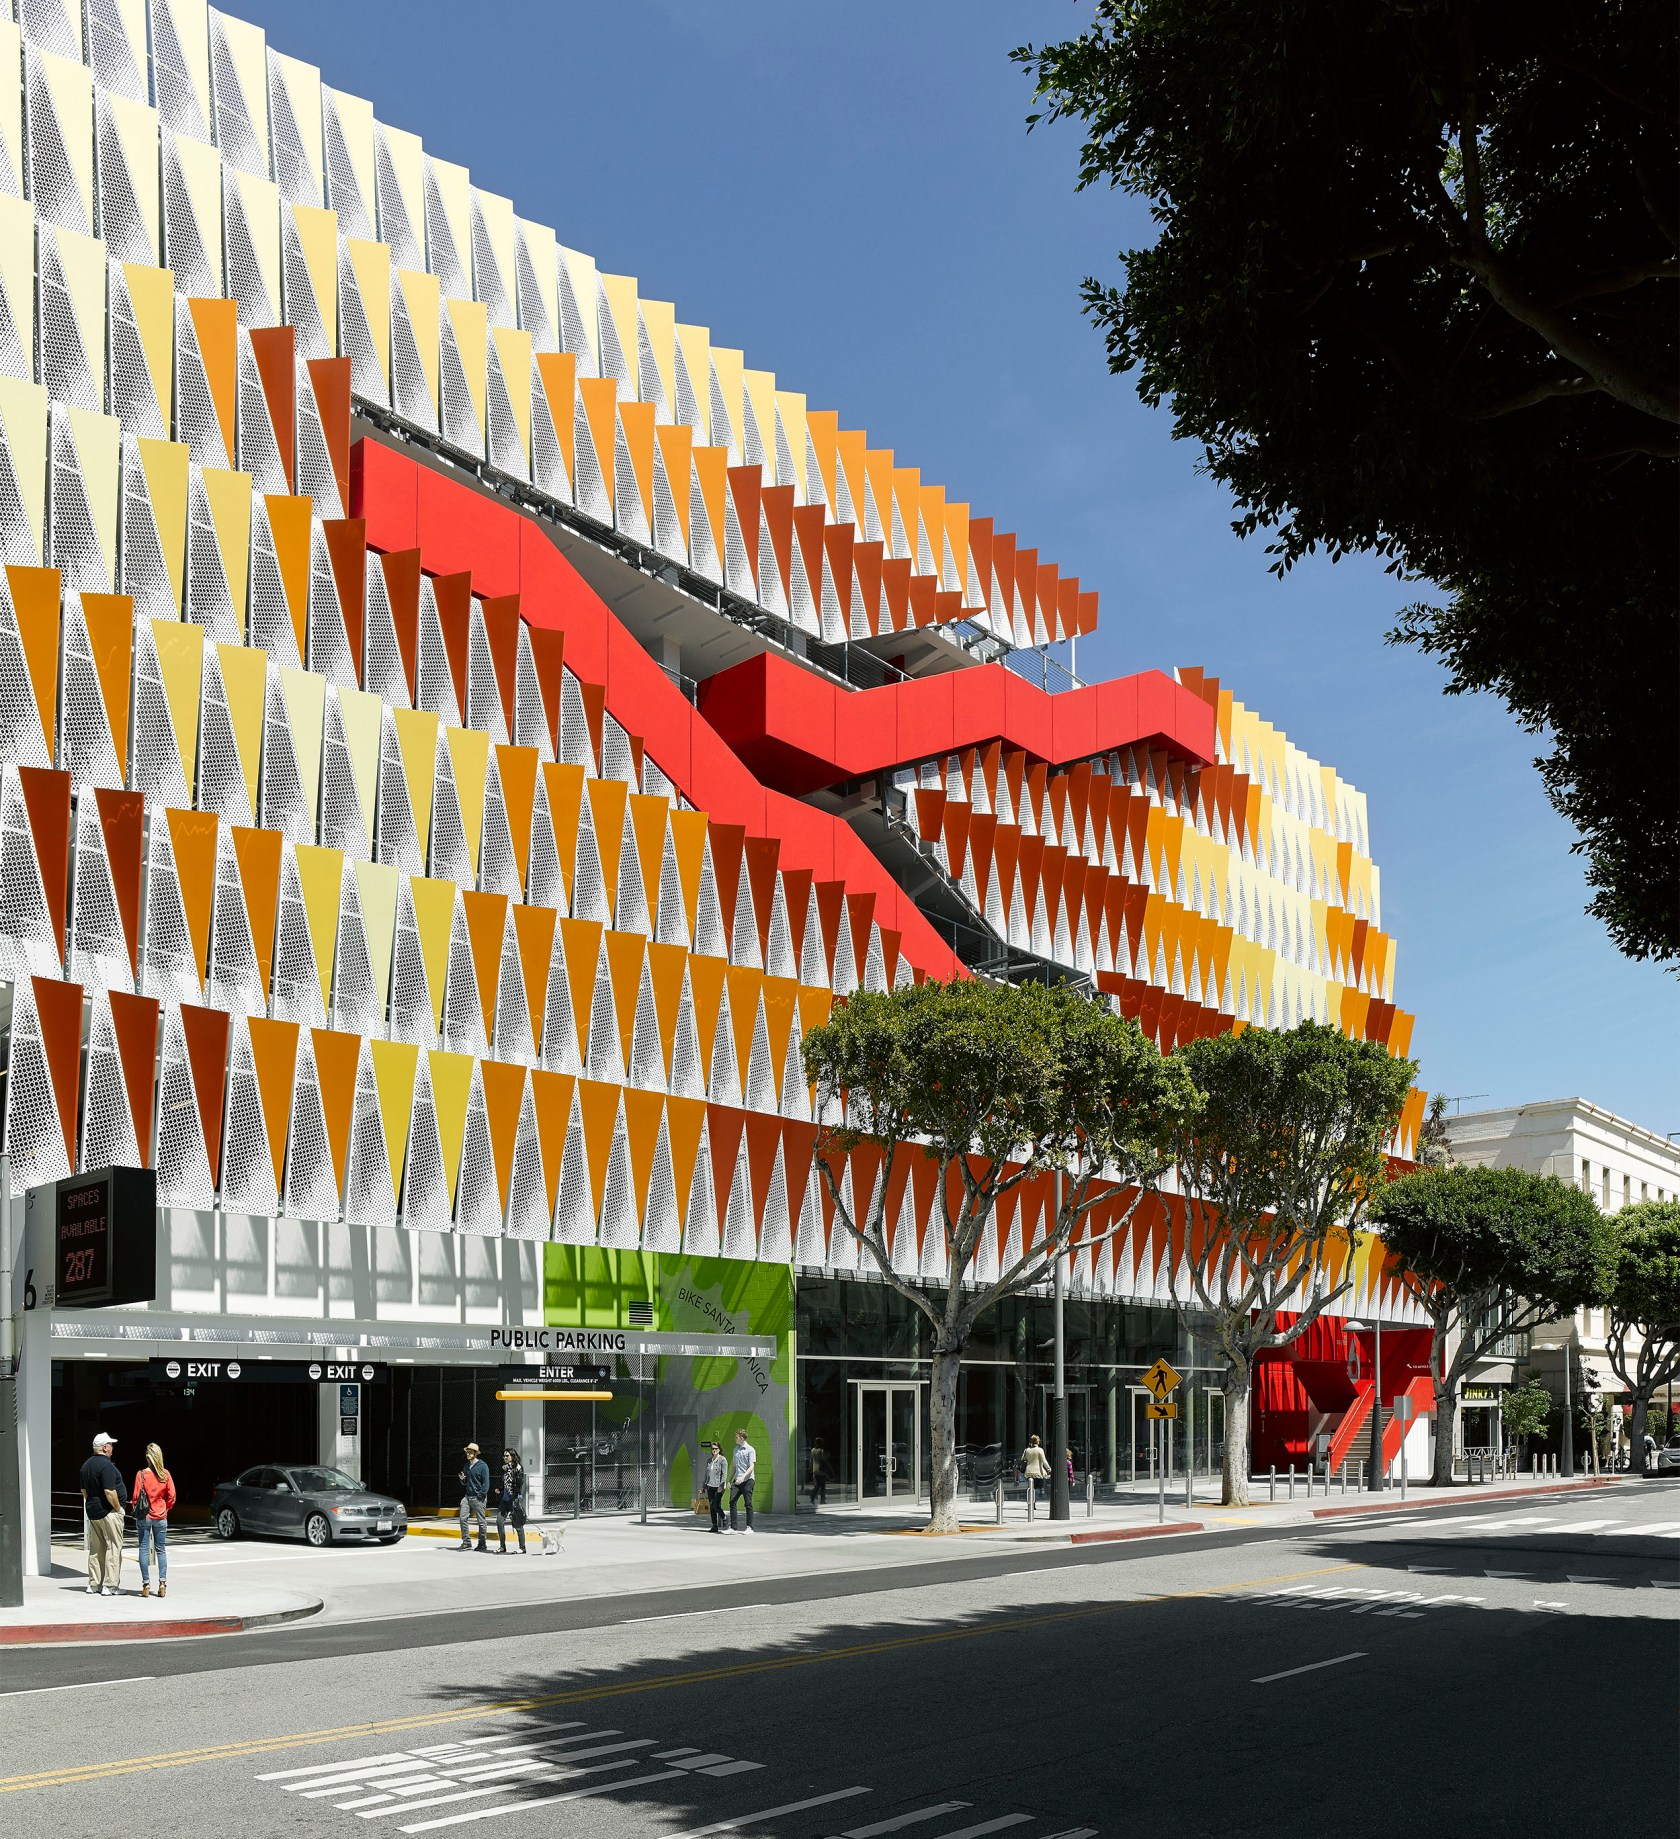 Marco Polo Tower City Of Santa Monica Public Parking Structure #6 - Architizer